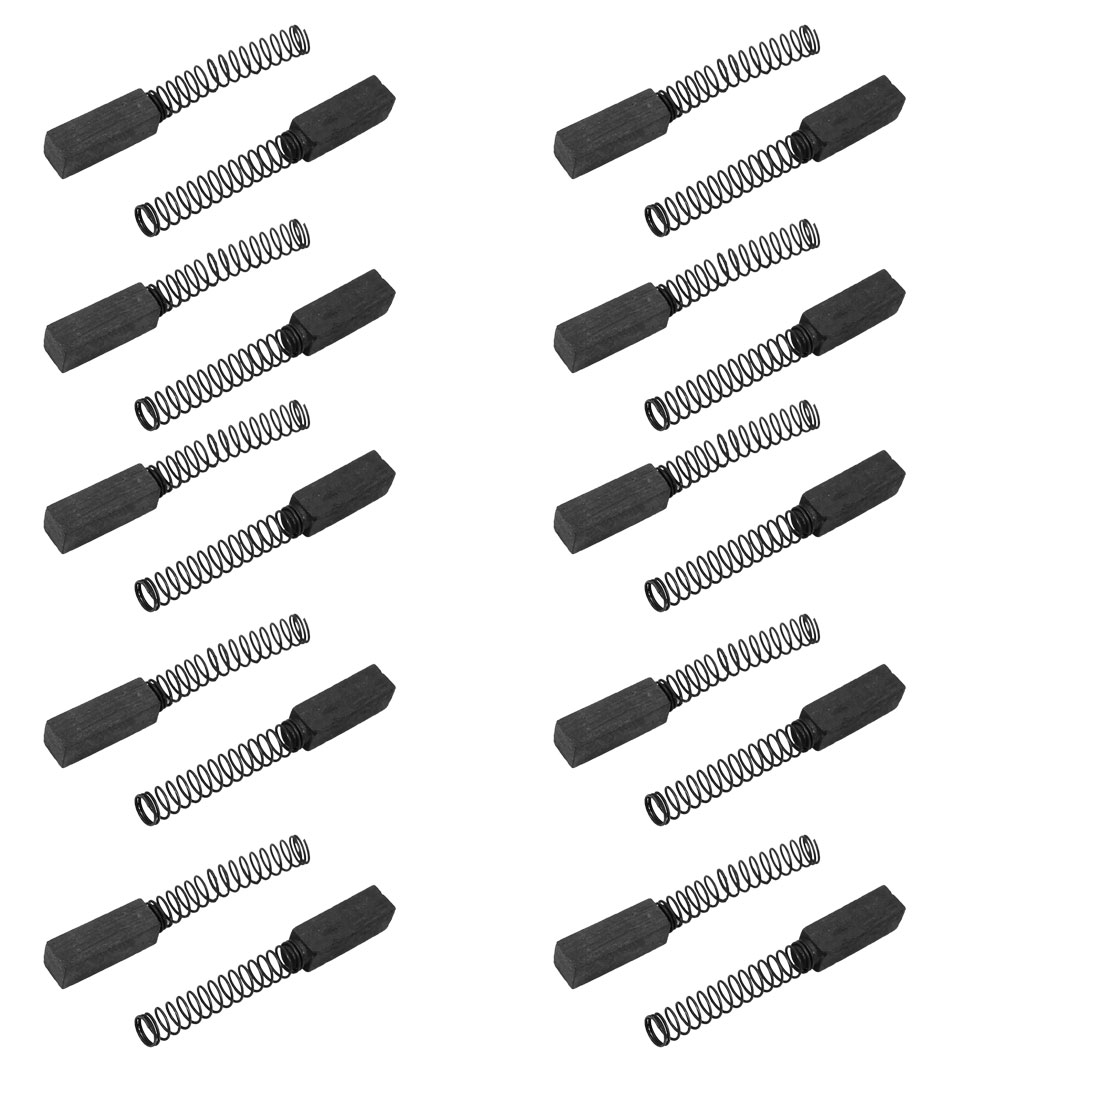 10 Pairs Replacement Carbon Brushes 4mm x 4mm x 13mm for Generic Electric Motor